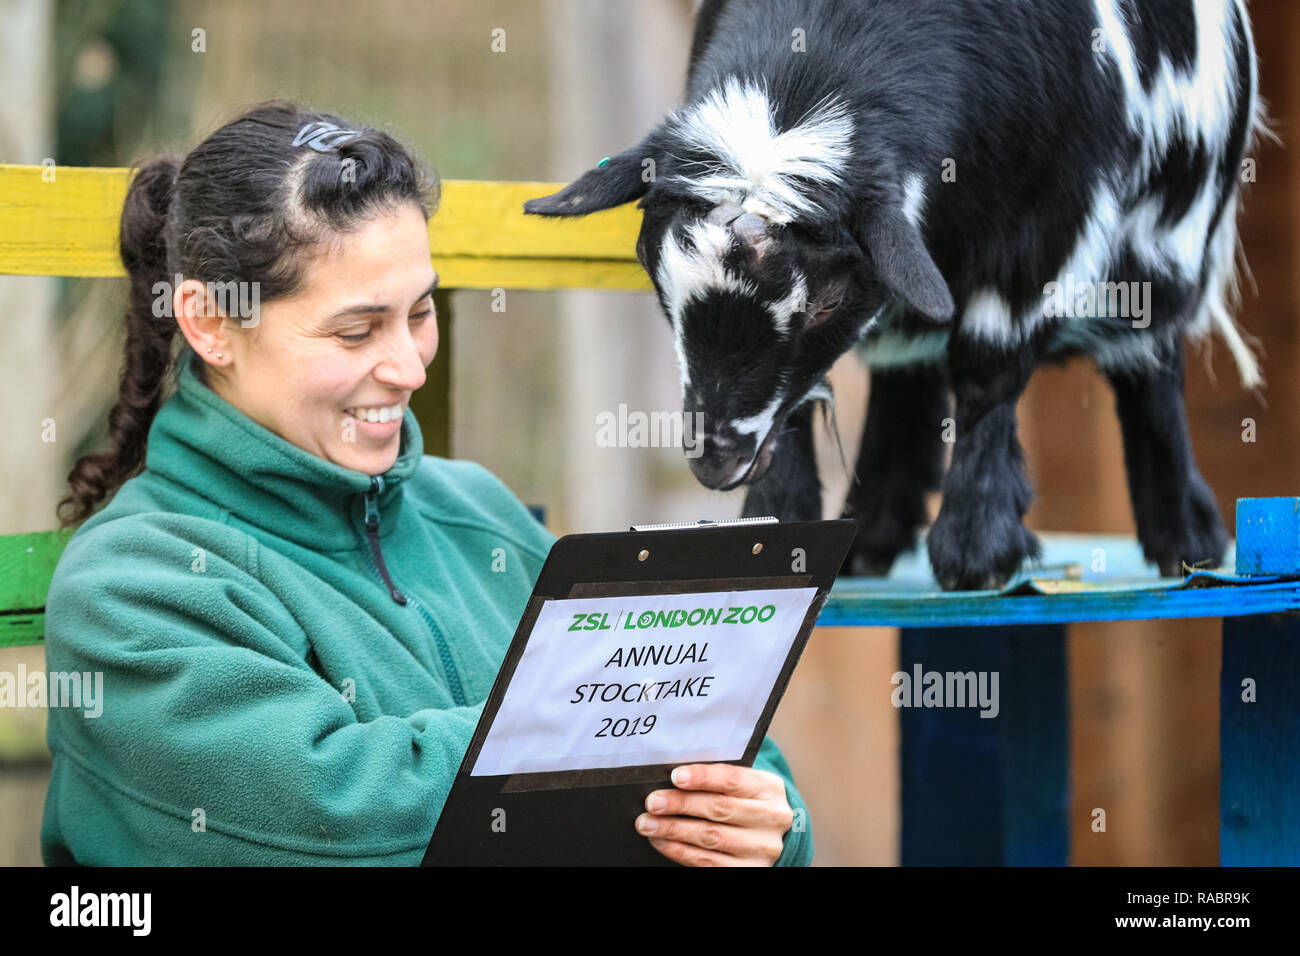 Count Goat Stock Photos & Count Goat Stock Images - Alamy